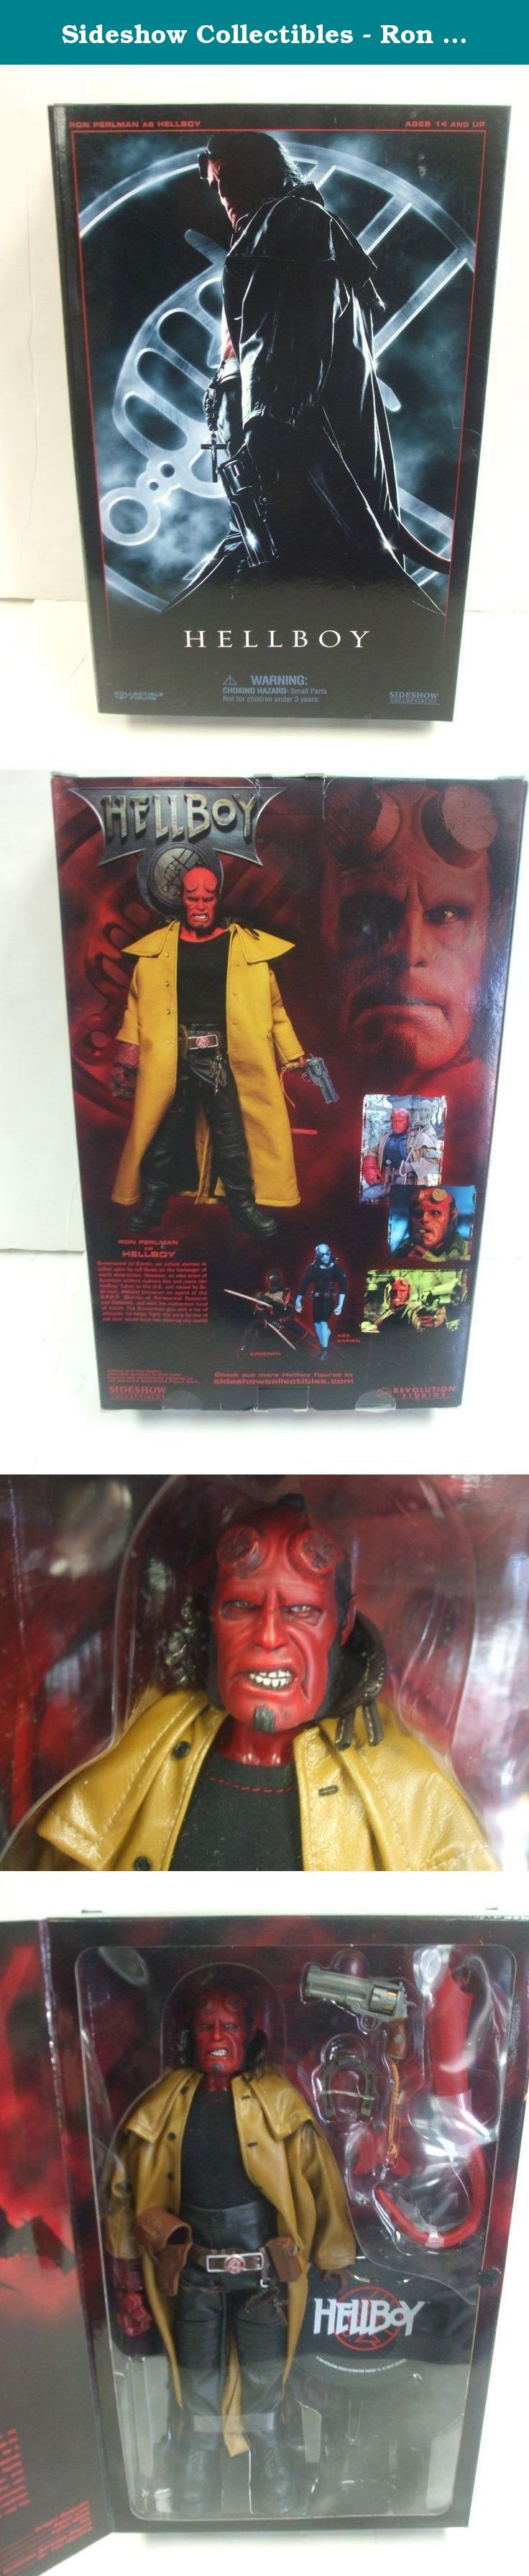 "Sideshow Collectibles - Ron Perlman as HELLBOY - 12"" Figure. Sideshow Colectibles - Ron Perlman as HELLBOY - 12"" Figure."